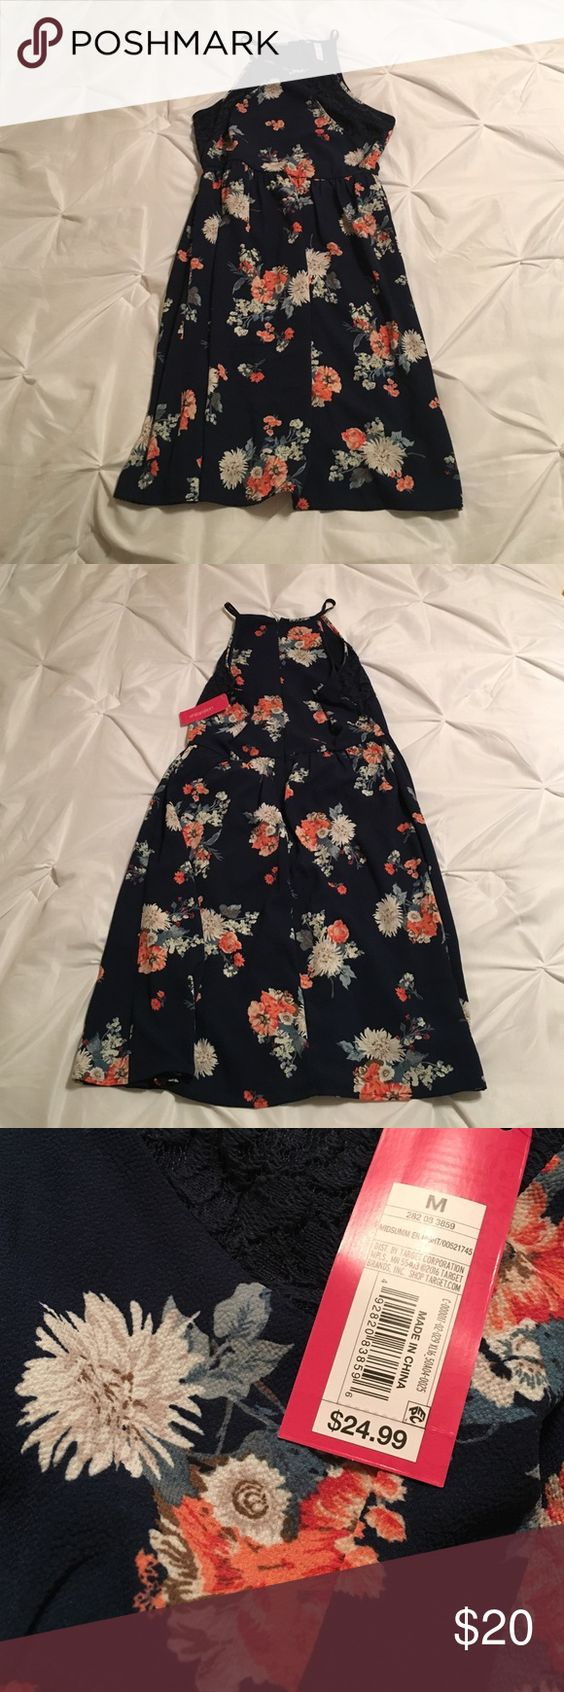 NWT floral dress NWT floral xhilaration dress  • just above knee length on me (I'm 5'6'' for reference) • zipper closure in back • halter neckline  • navy blue lining attached  •gathers at waist   this dress is perfect for any special occasion! Xhilaration Dresses